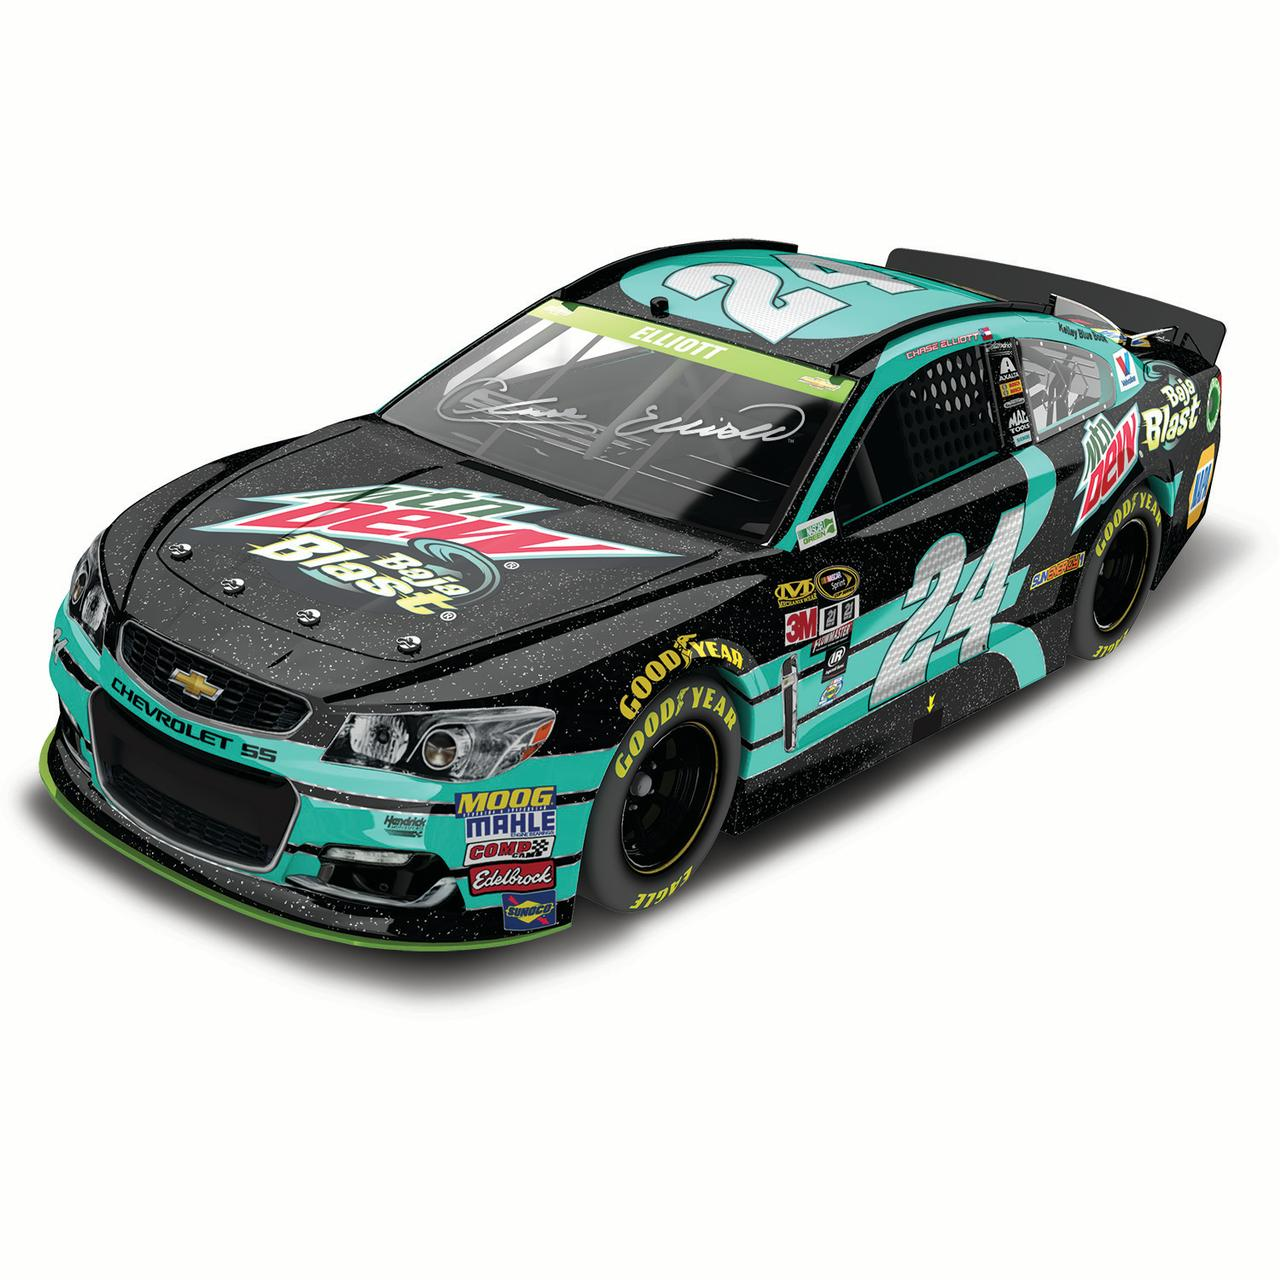 Chase Elliott Action Racing 2016 #24 Mountain Dew Baja Blast 1:24 Nascar Sprint Cup Series... by Lionel LLC